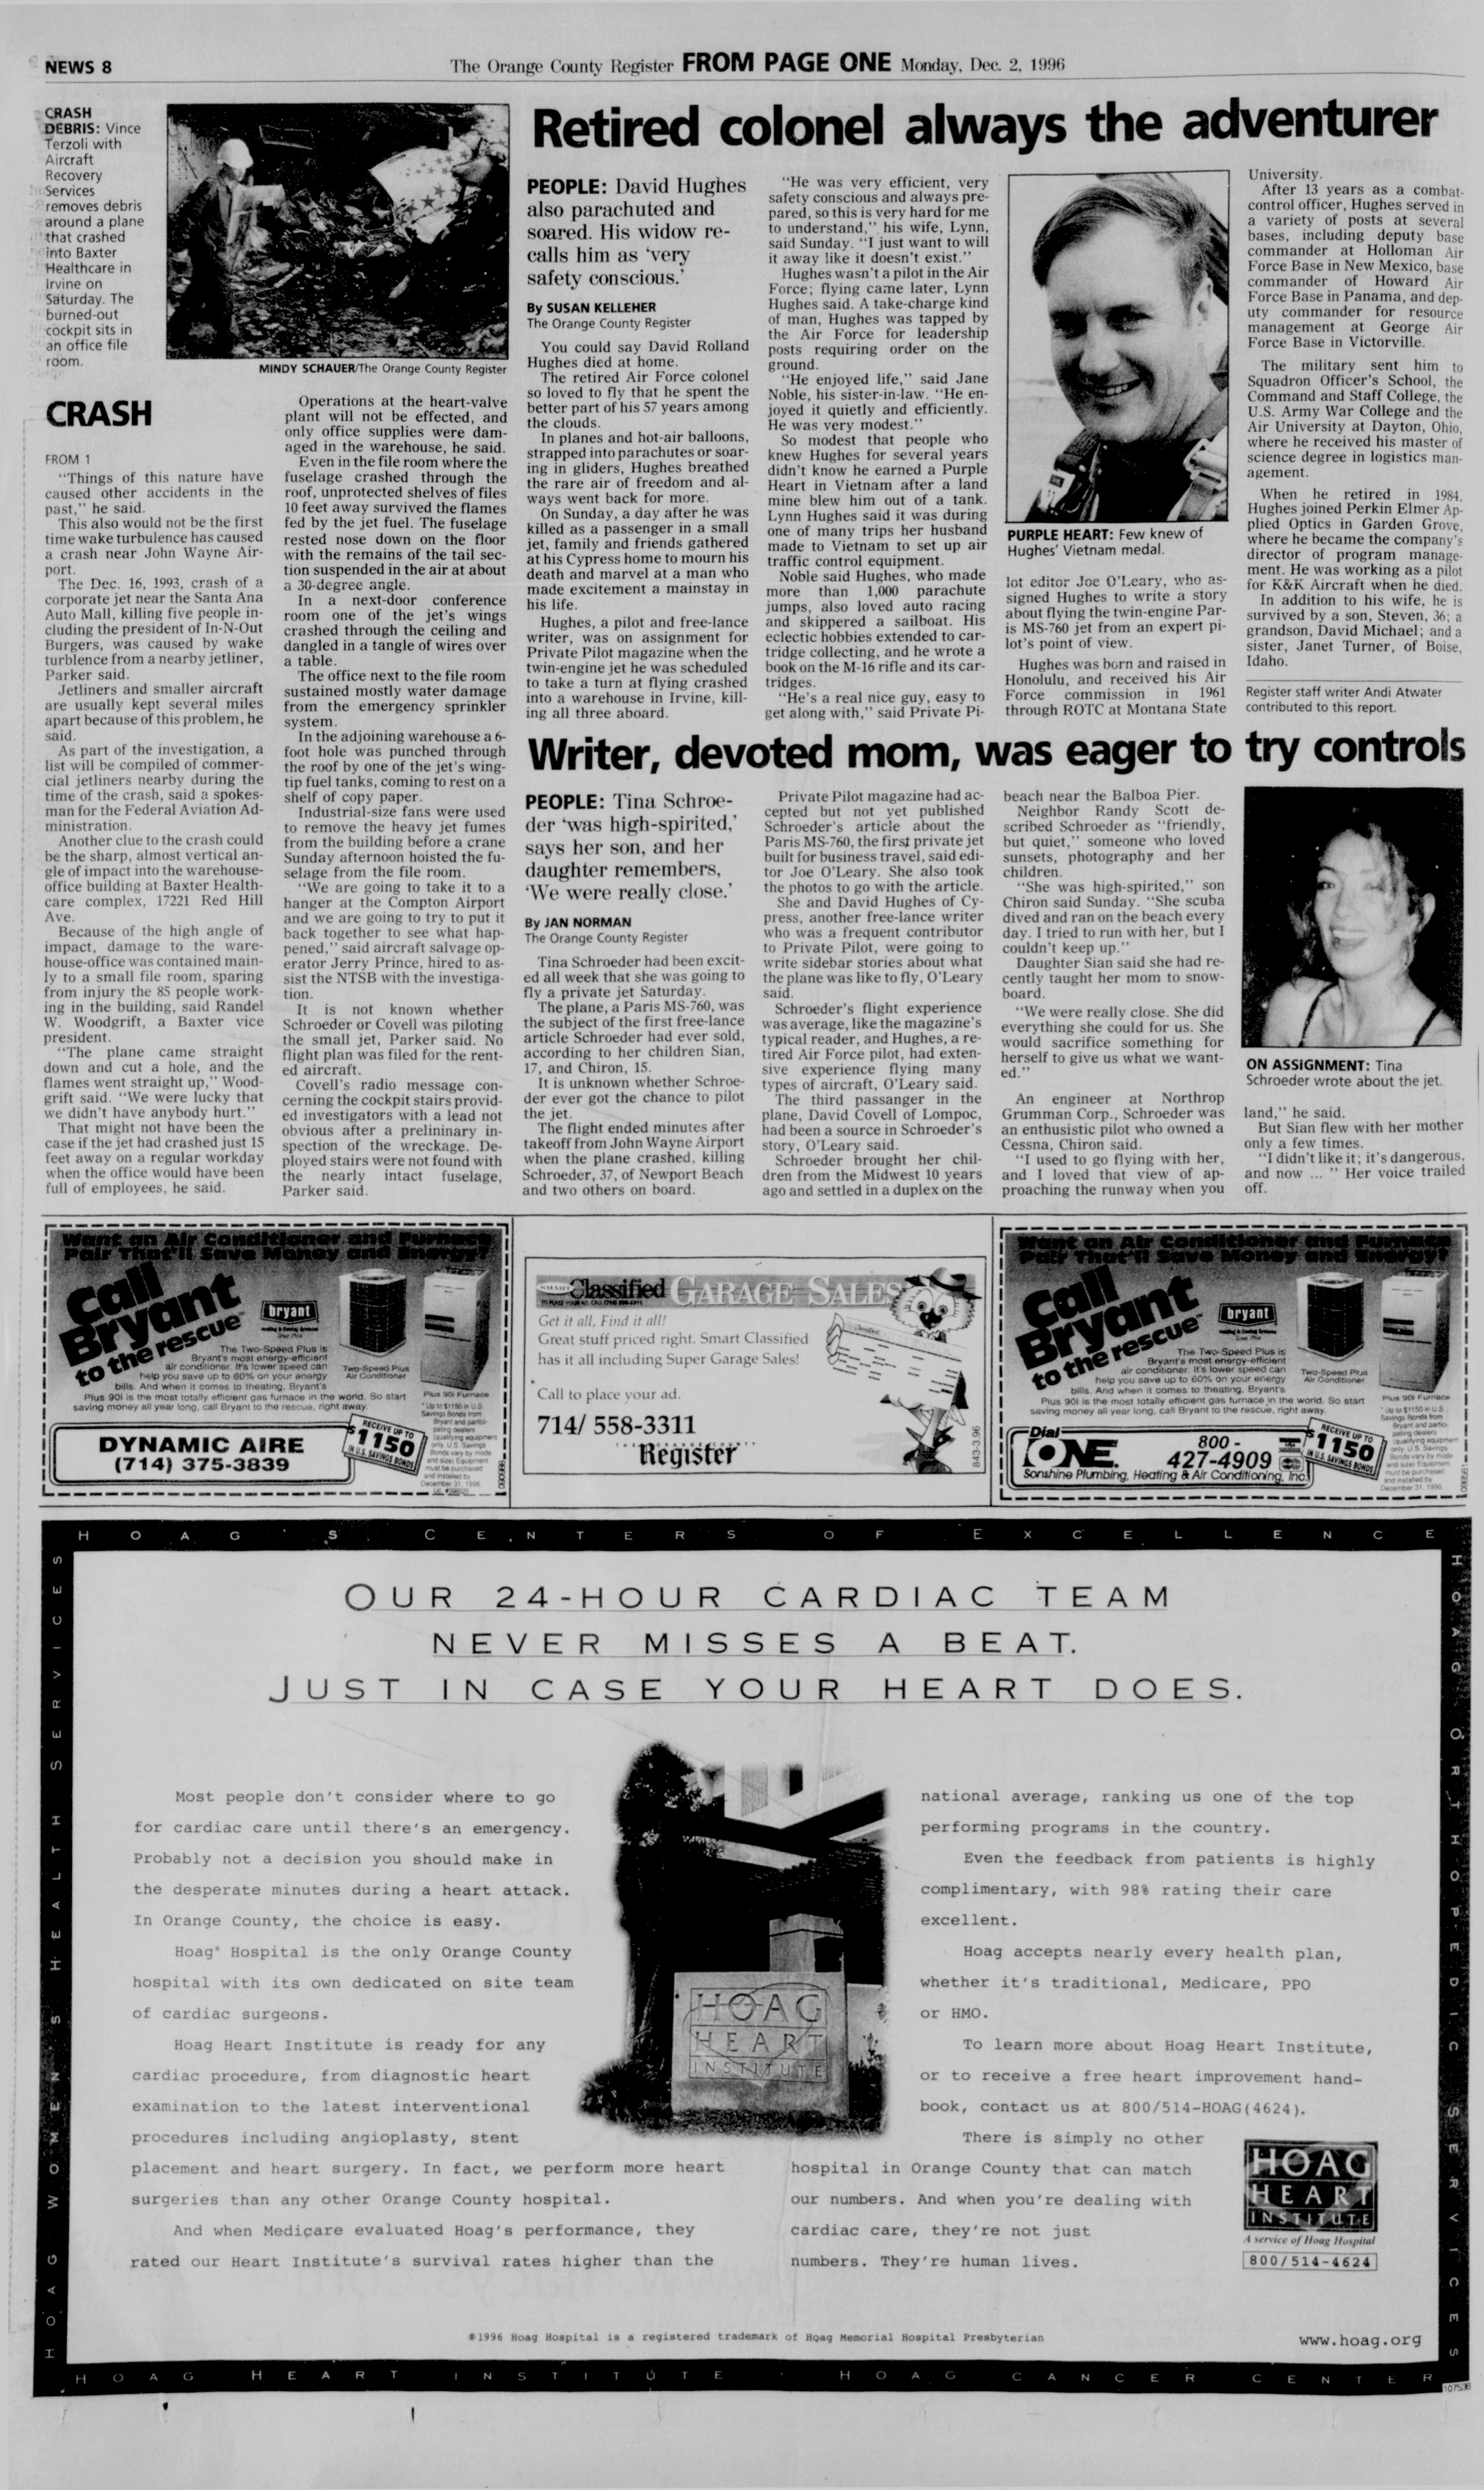 From the Orange County Register, December 2, 1996—2 days after the crash of N2TE